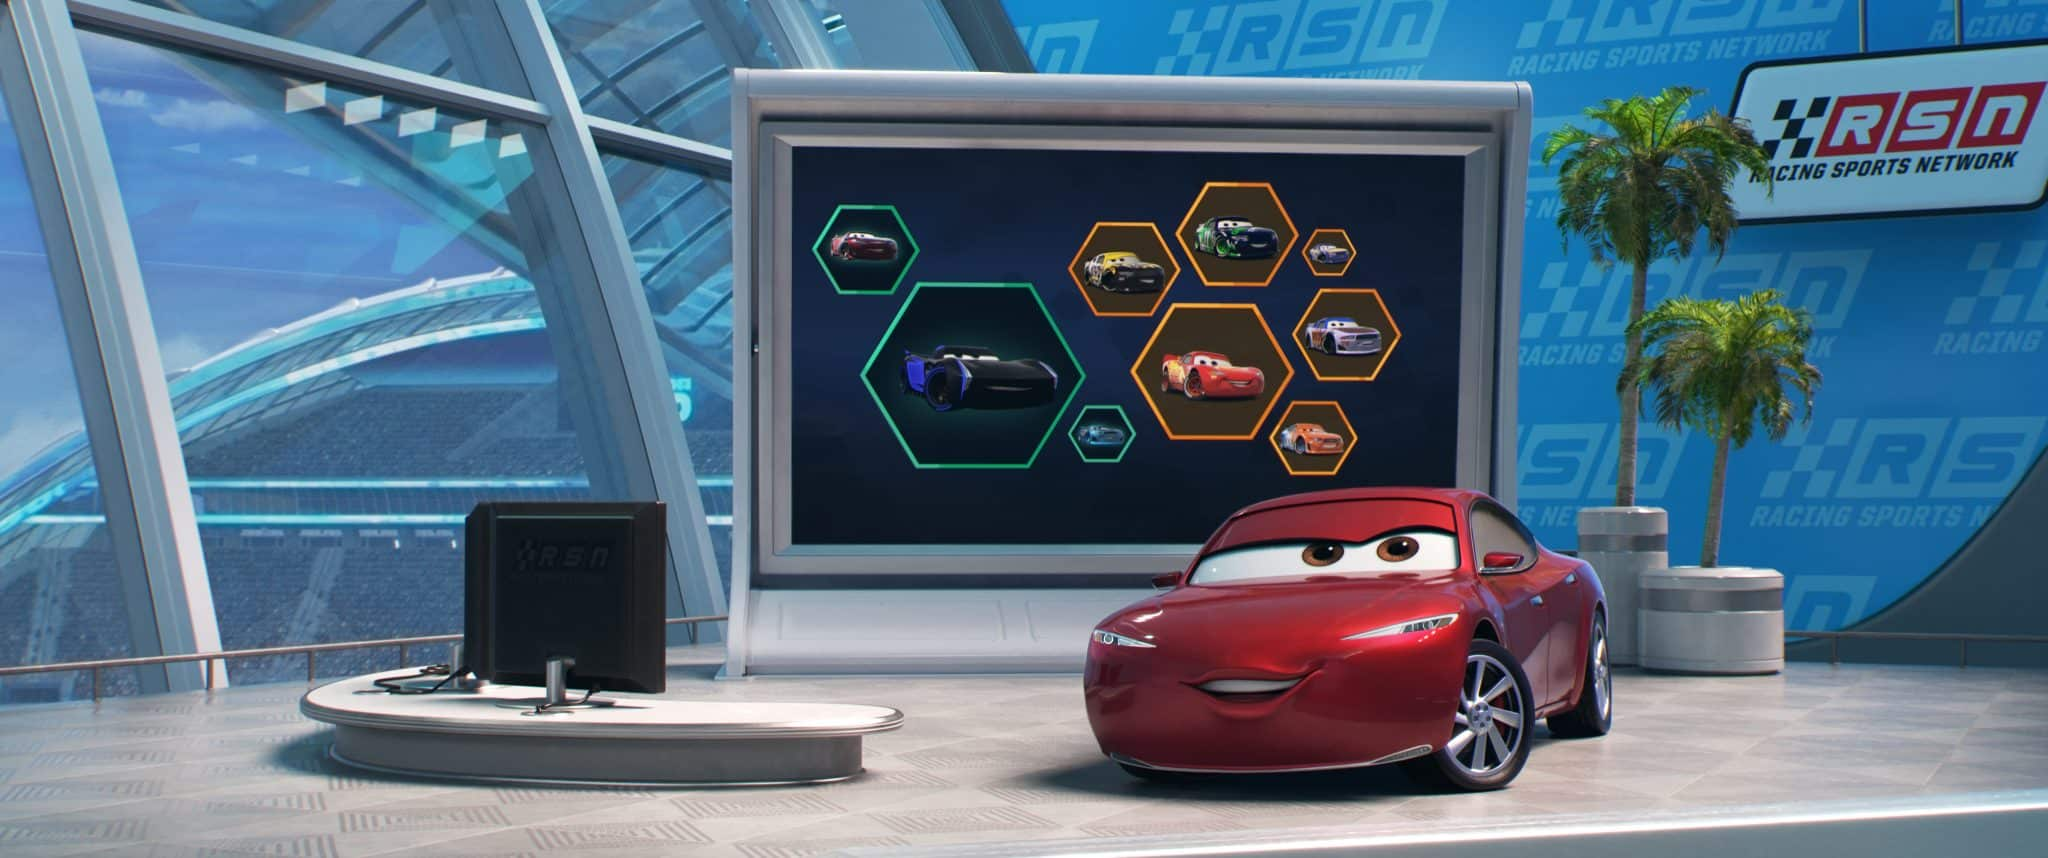 The Story of Cars 3! #Cars3Event